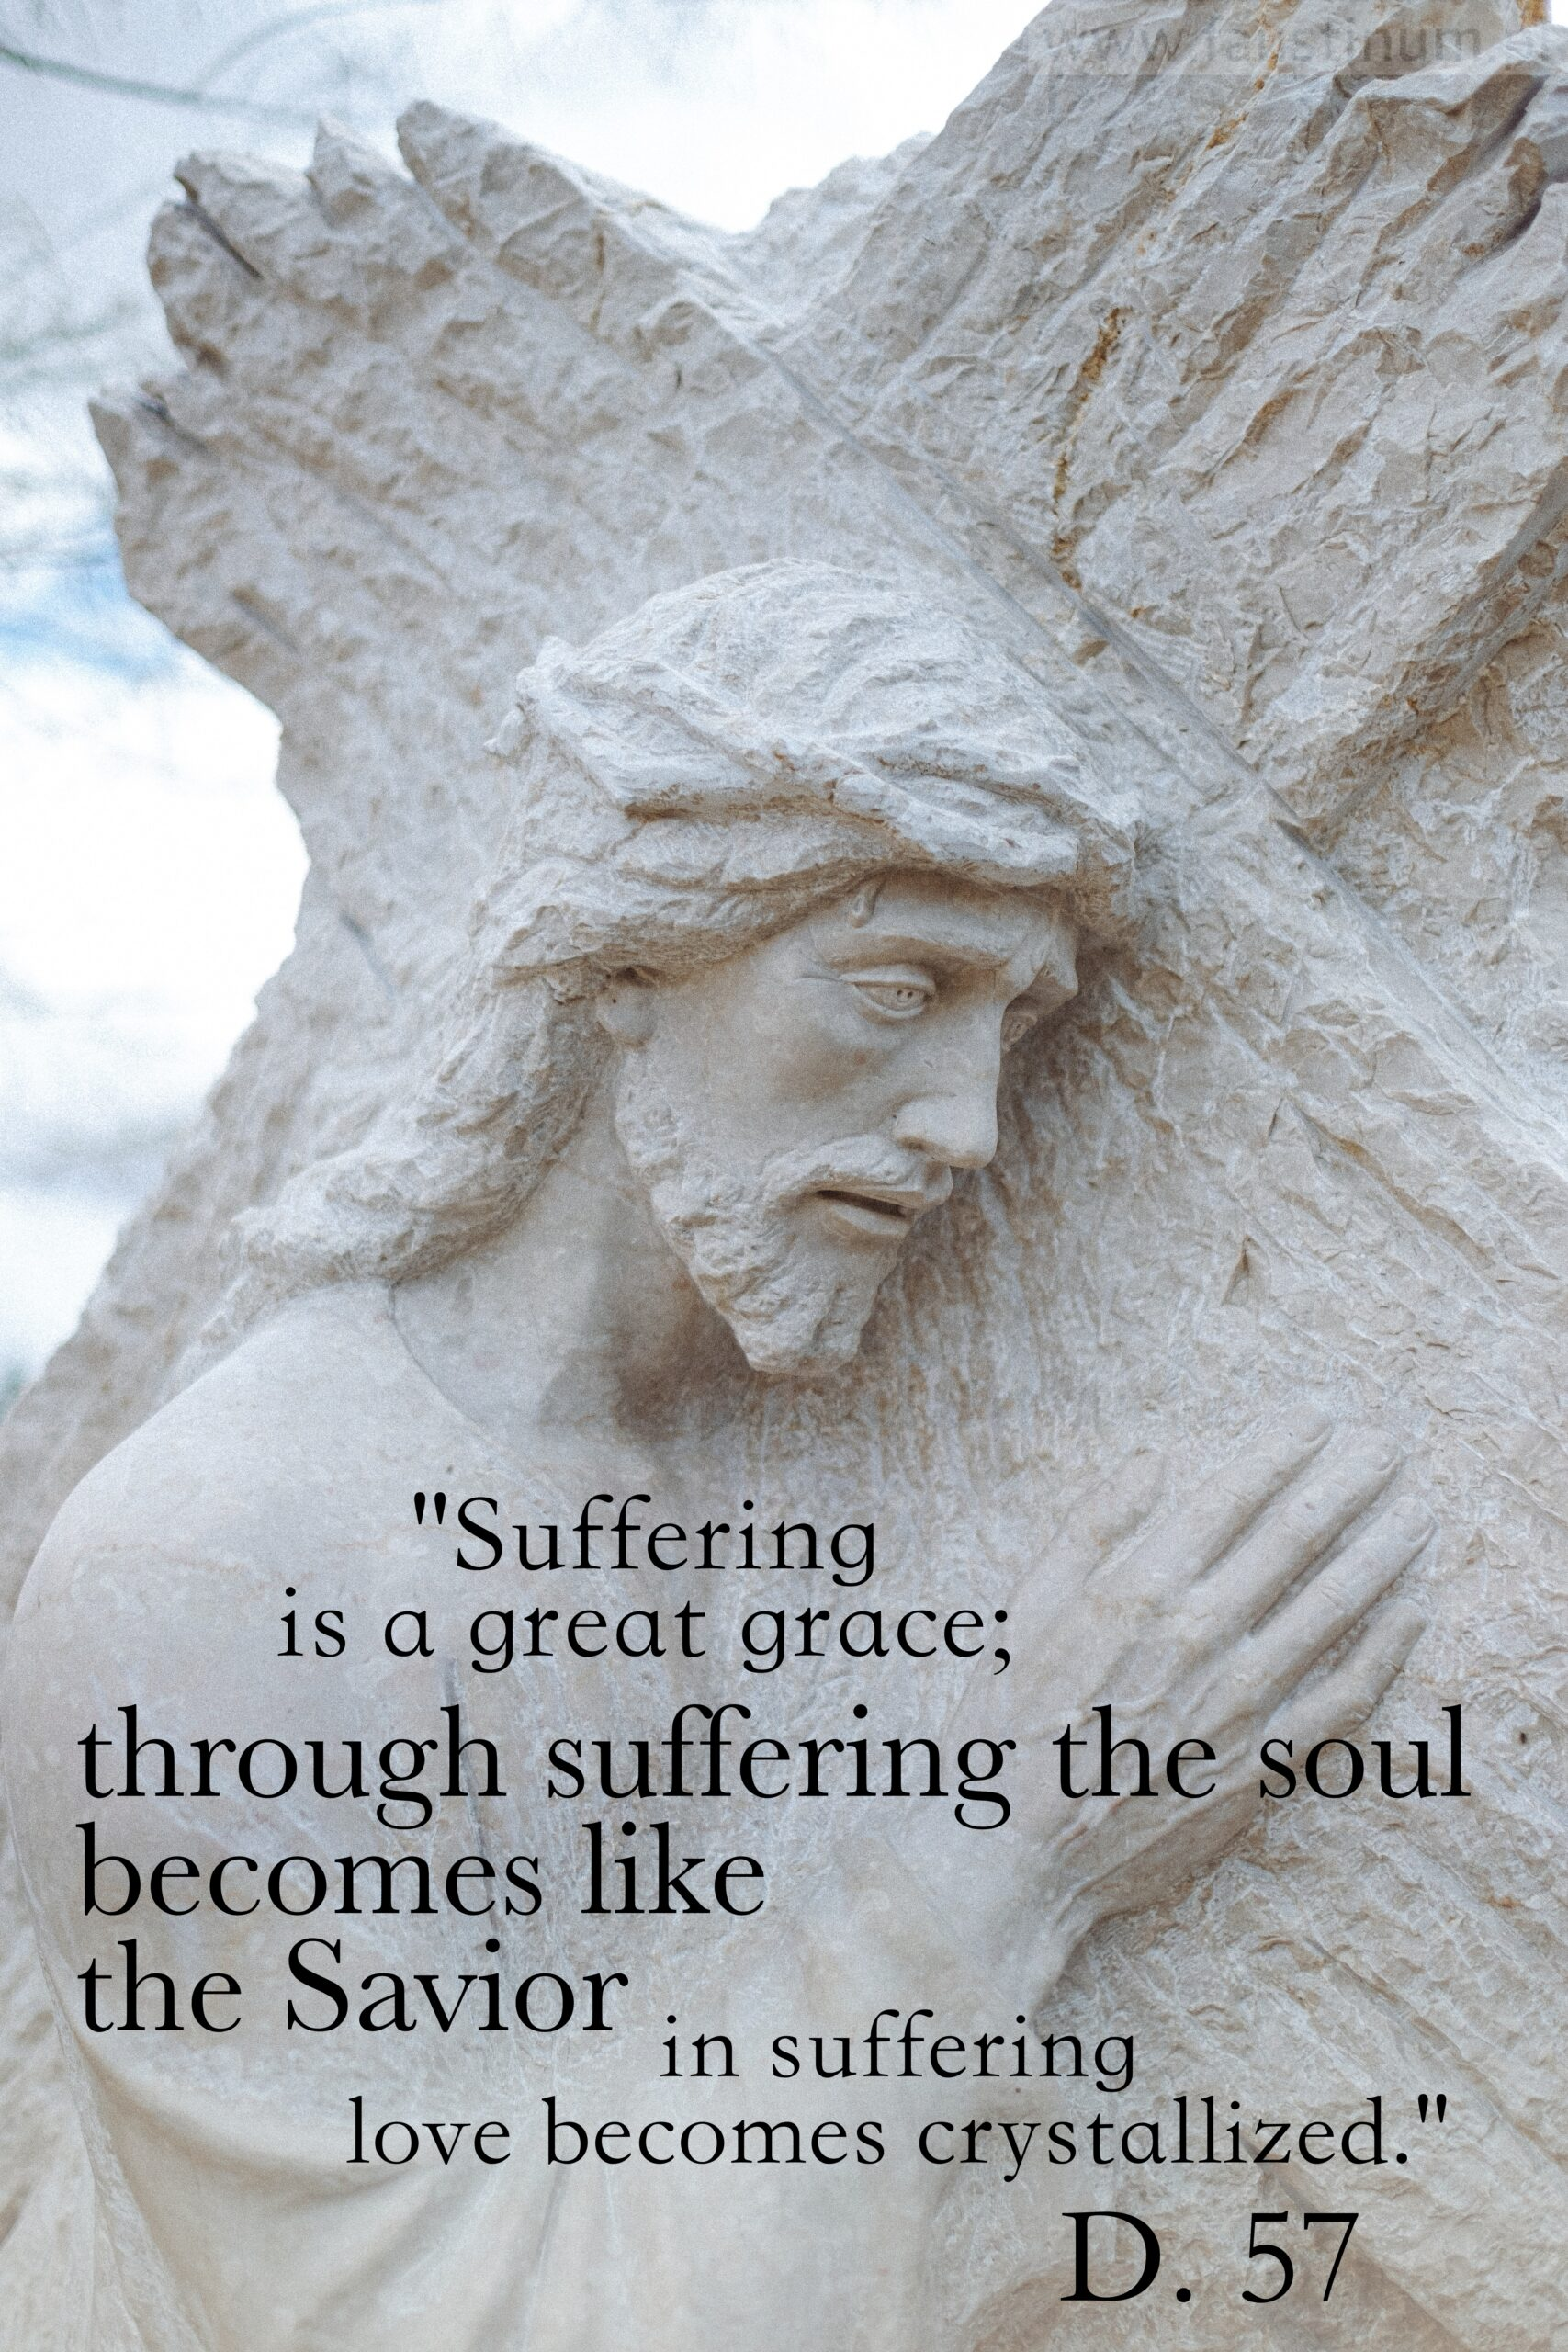 Diary of St. Faustina, about suffering, D. 57